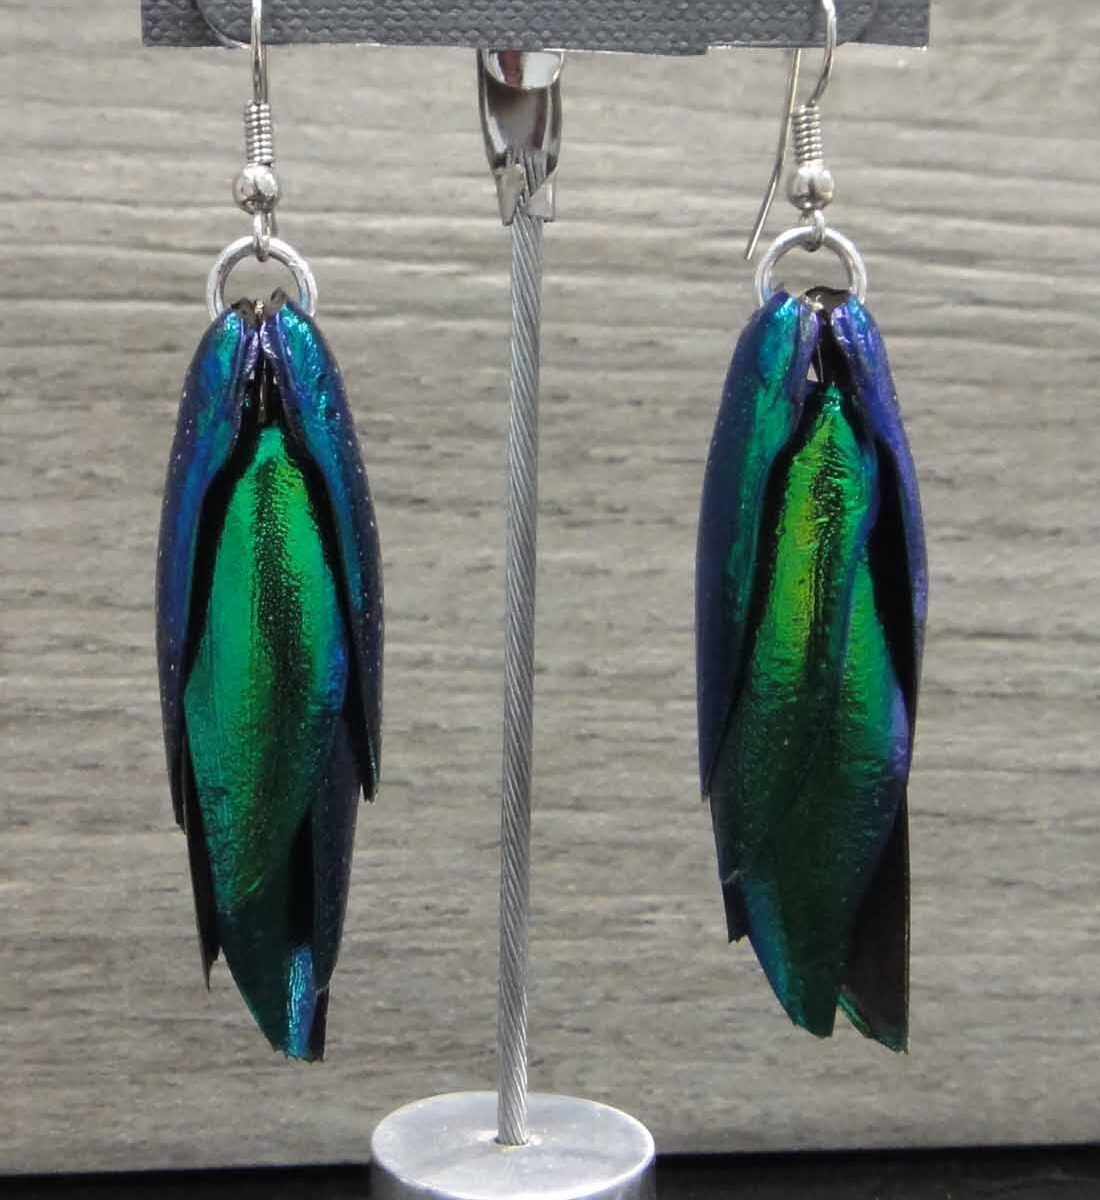 Naturally expired emerald beetle wing earrings